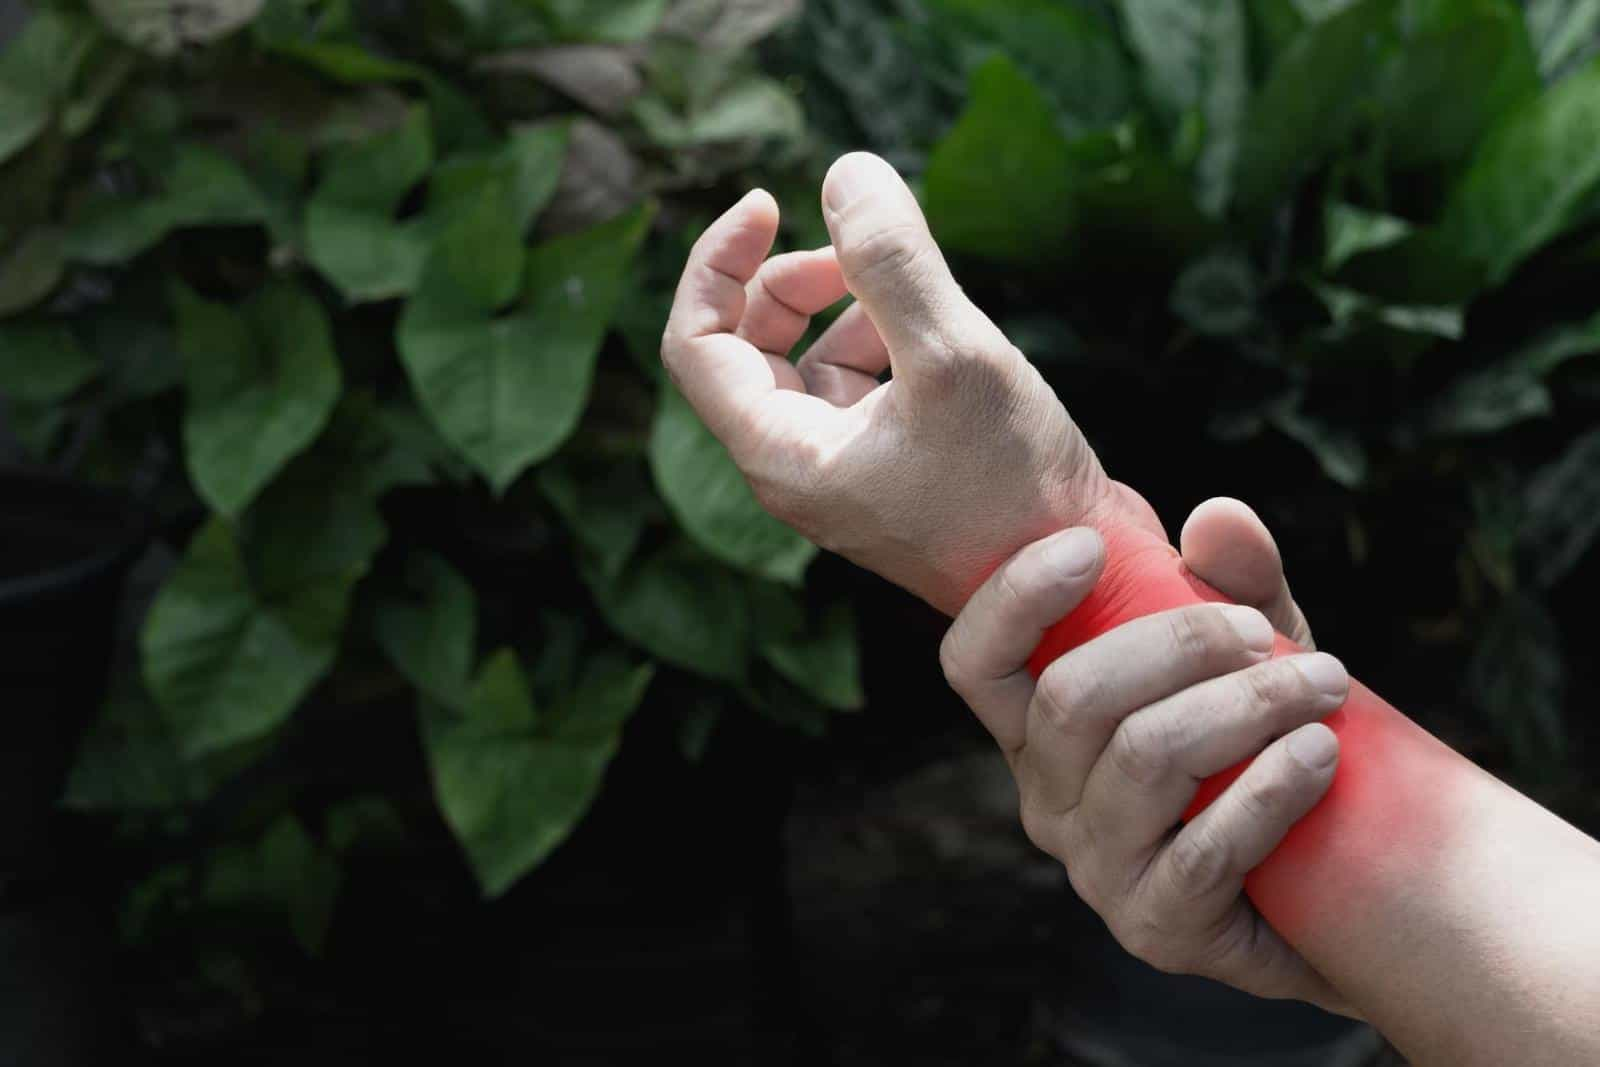 Natural remedies for arthritis: Person holding wrist